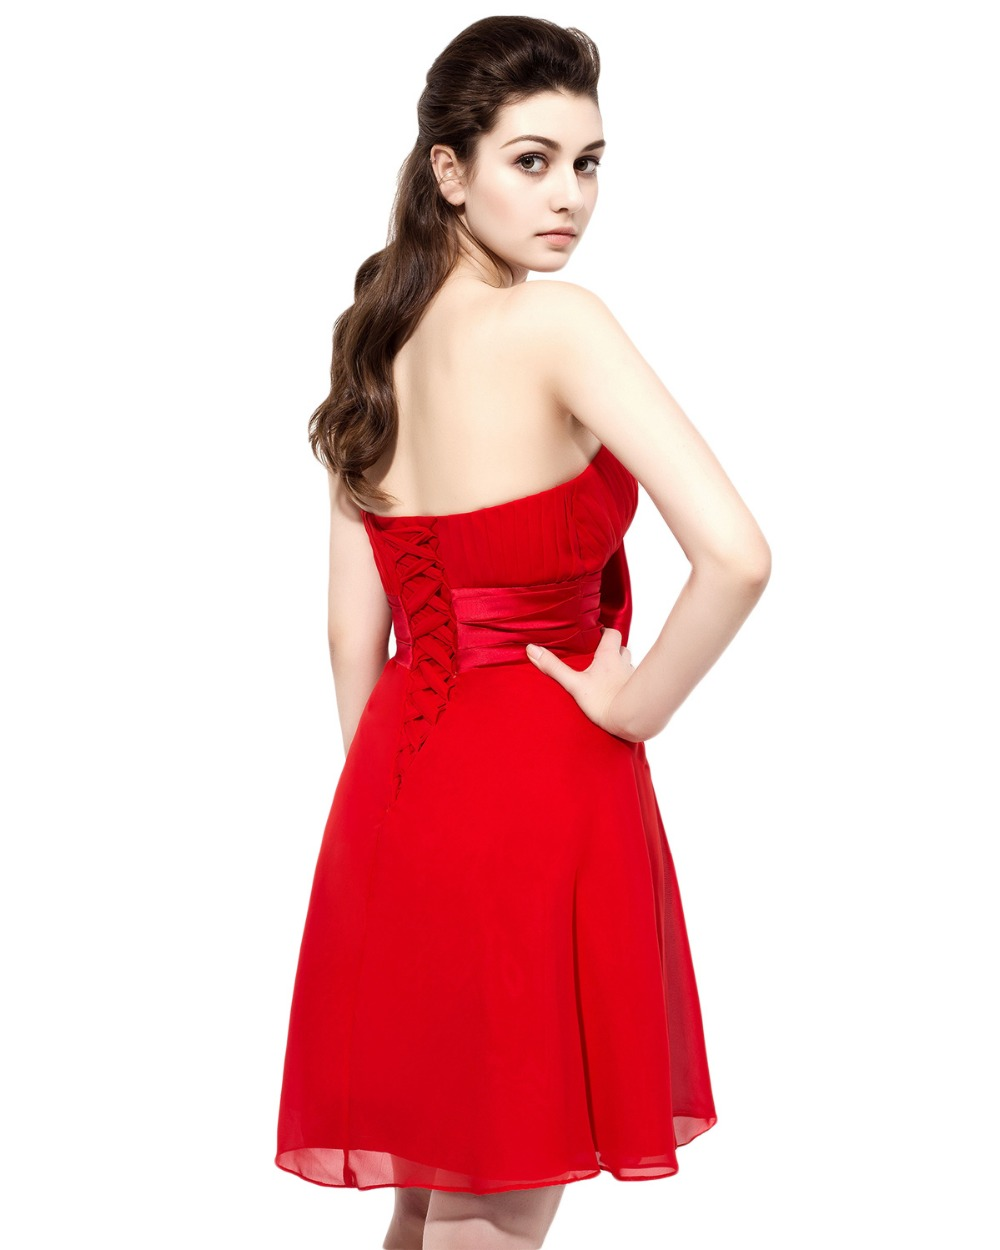 5b2f468228c ANGELSBRIDEP Red Short Bridesmaid Dresses With Bow At Waist Chiffon Lace up  Strapless Cheap Party Formal Gown-in Bridesmaid Dresses from Weddings    Events ...